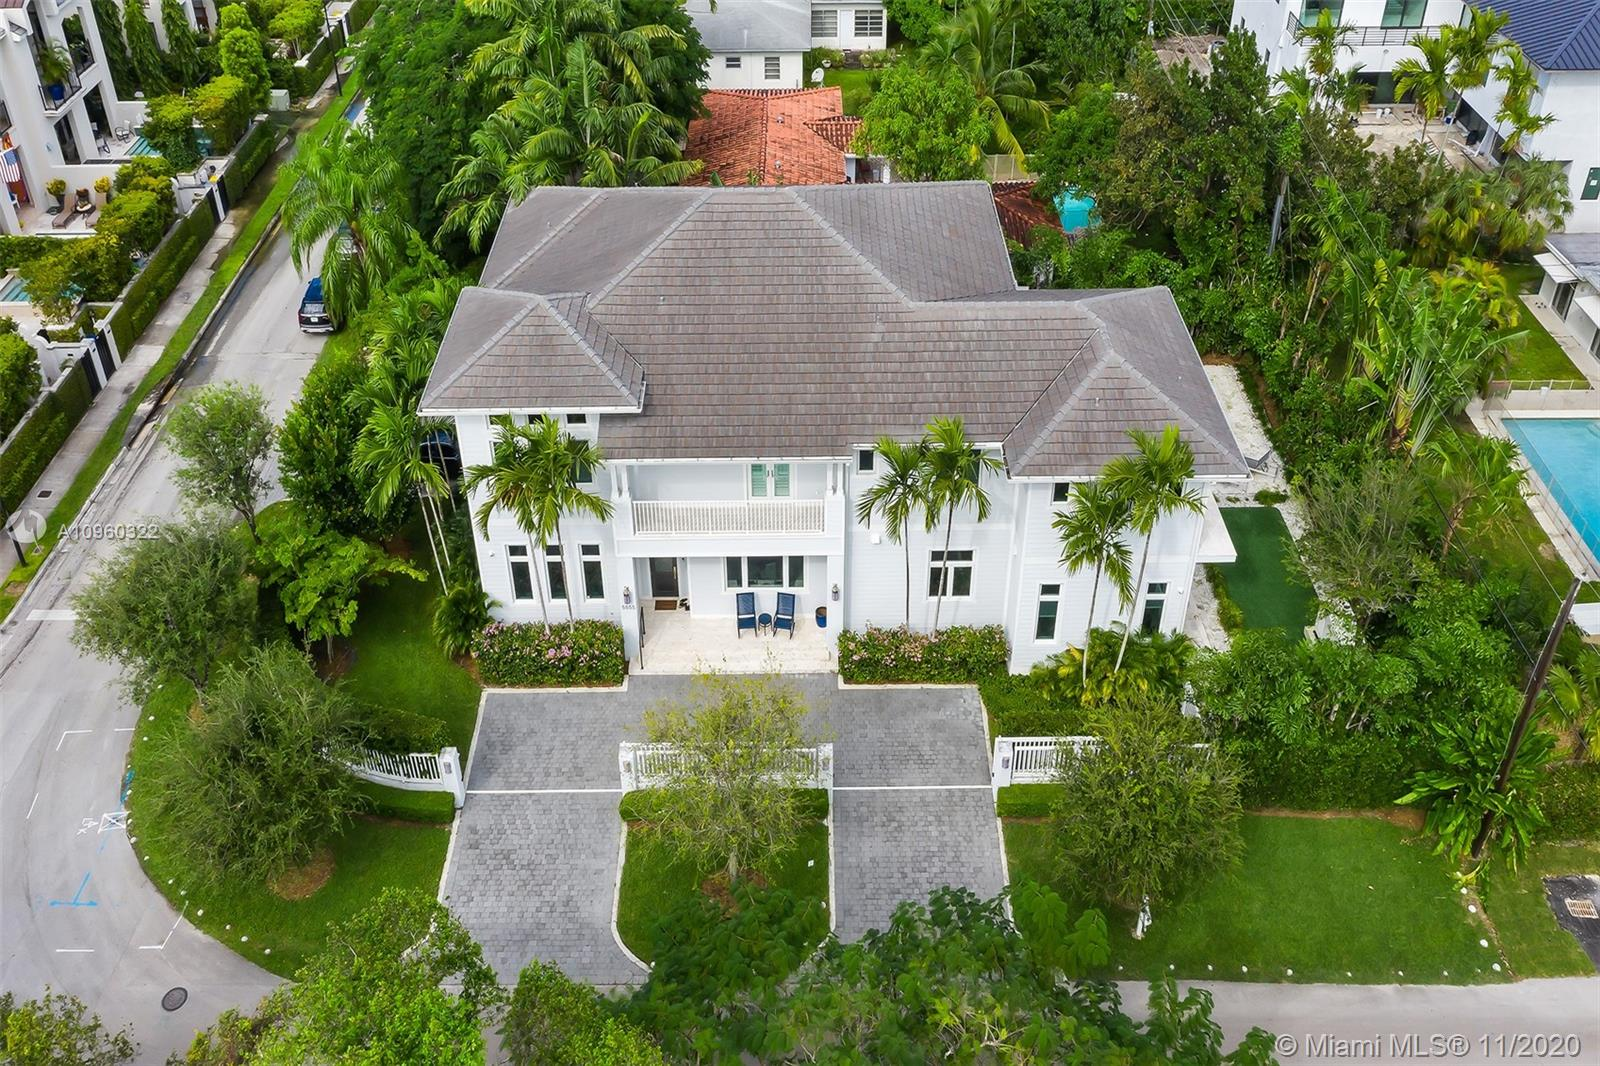 Details for 5555 76th St, South Miami, FL 33143